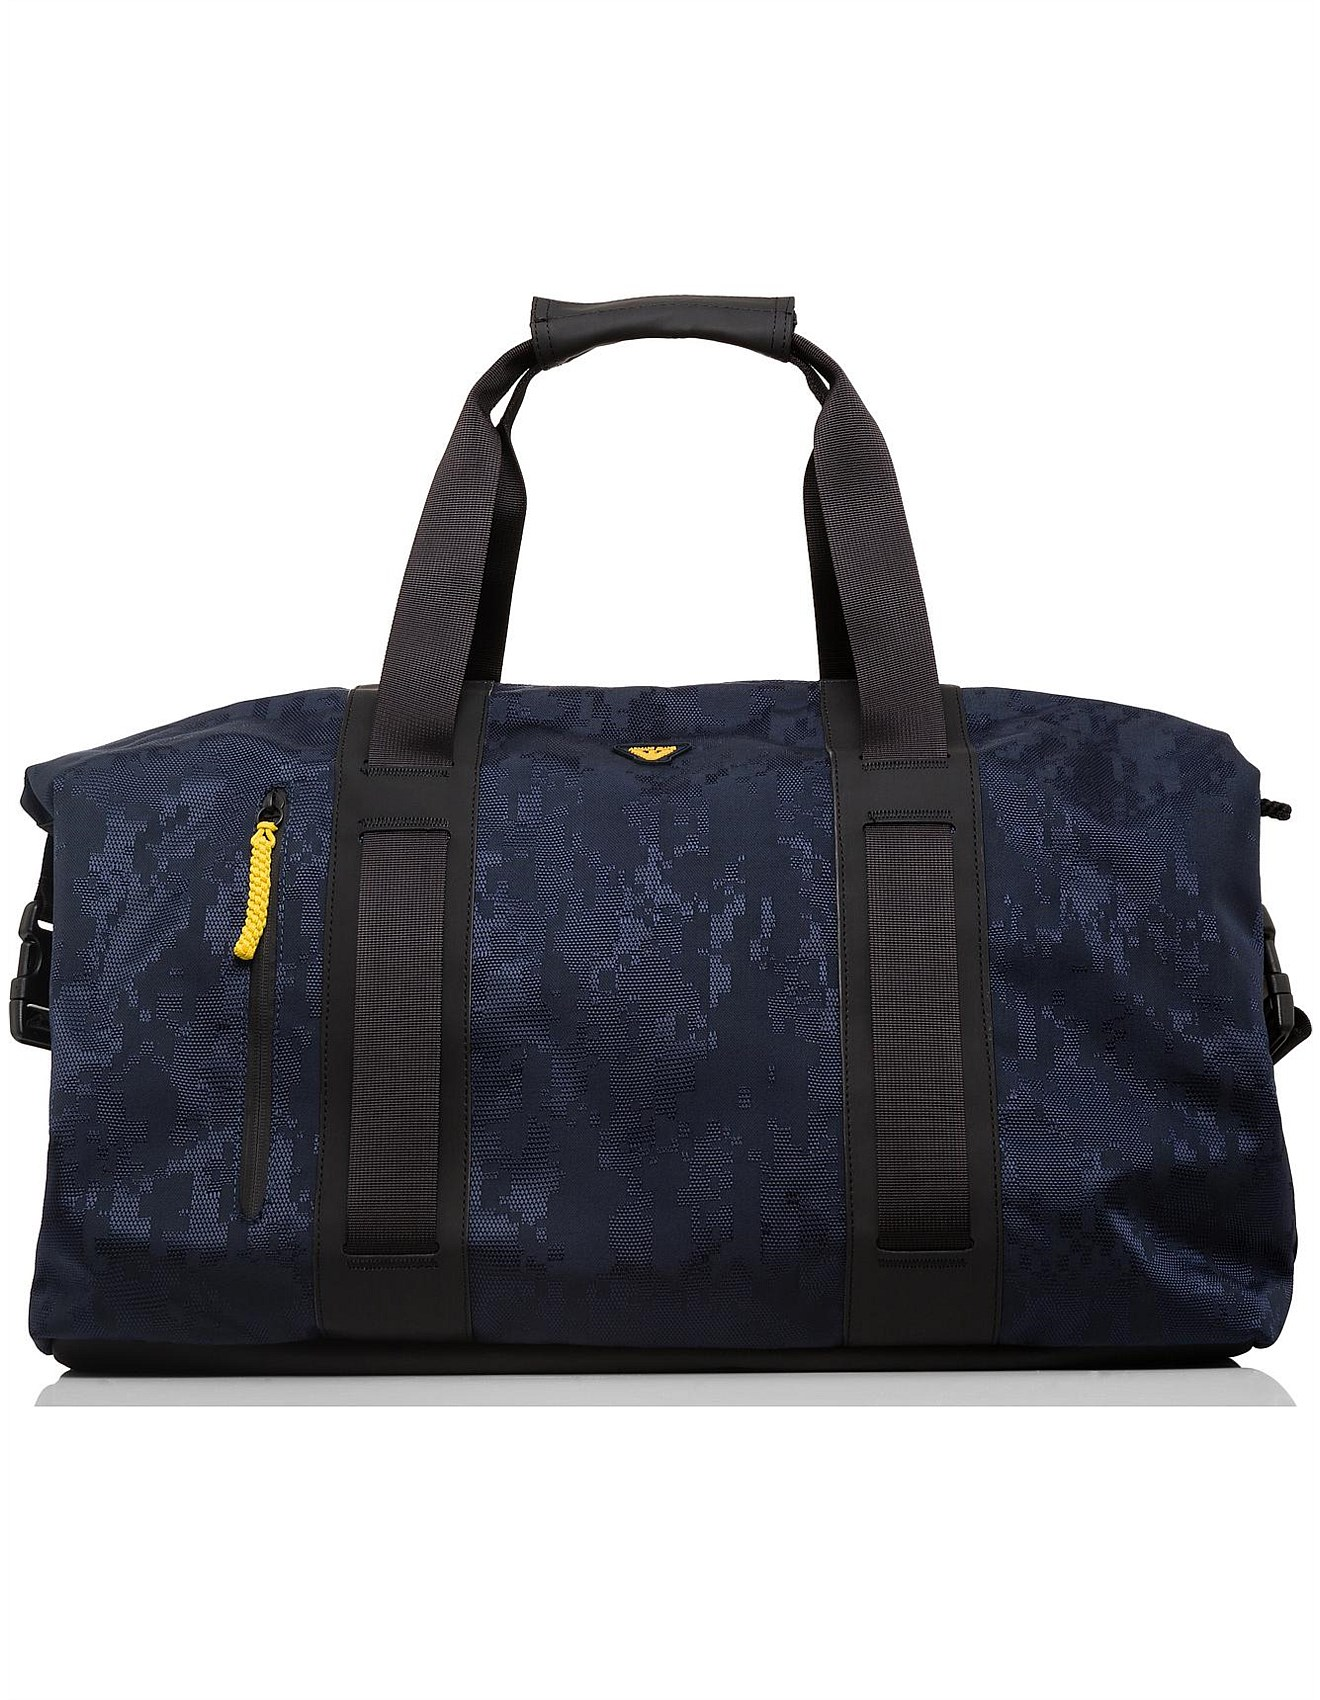 42c82a7428e Armani Jeans   Buy Armani Jeans Clothing Online   David Jones - Digital  camo printed nylon holdall